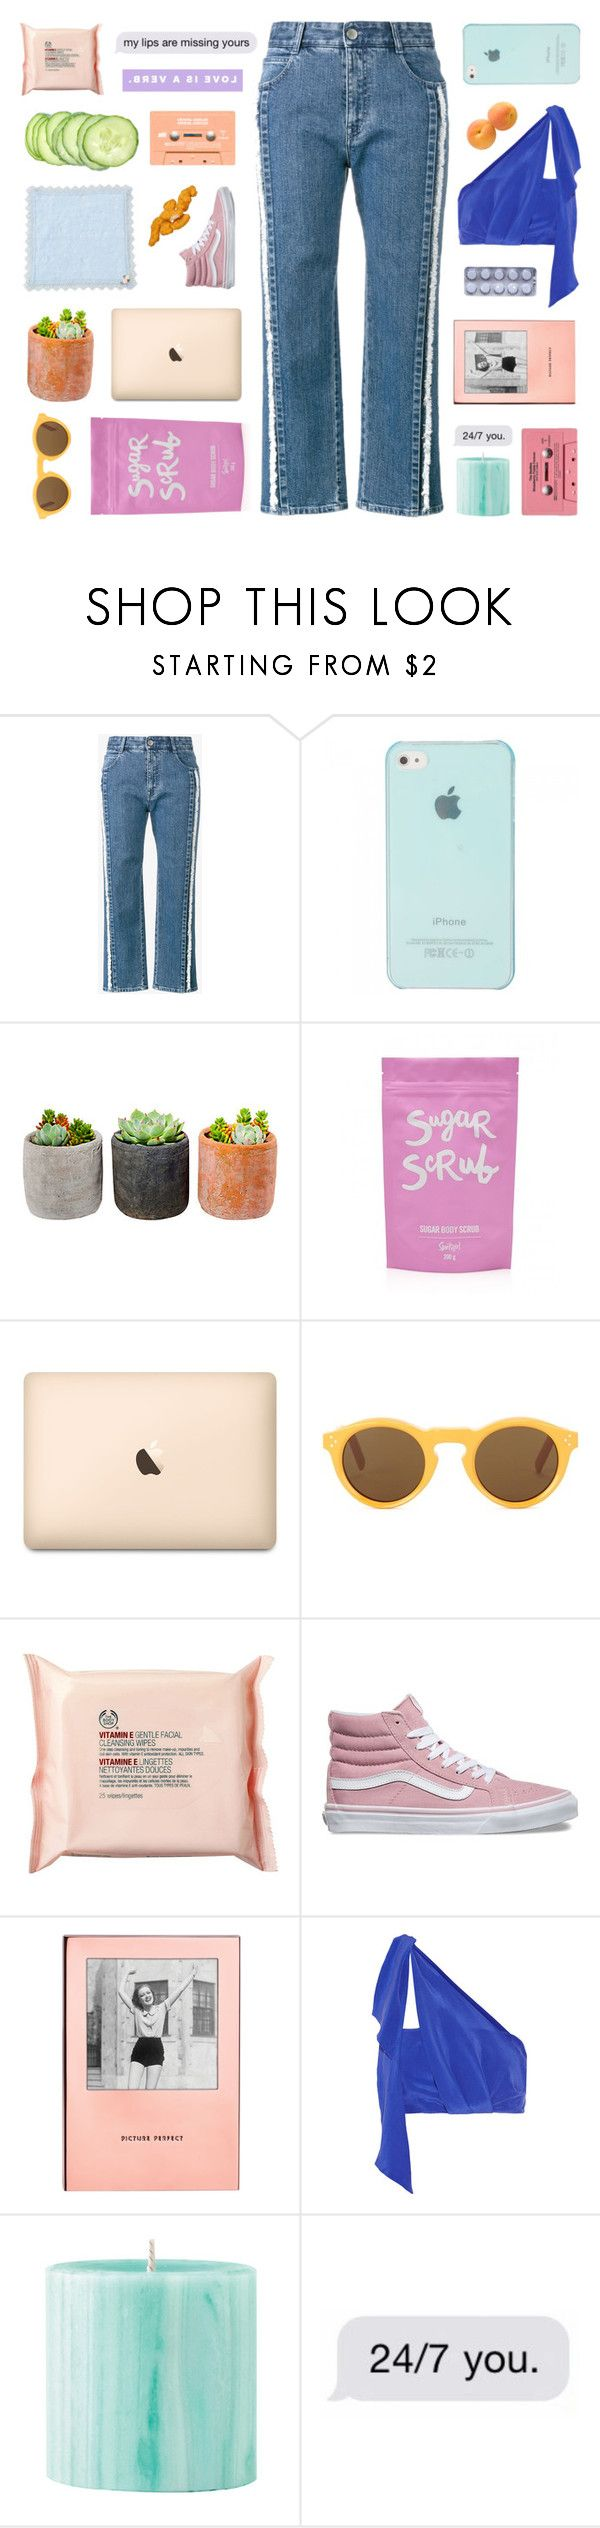 """""""that little mouse"""" by frostedfingertips ❤ liked on Polyvore featuring STELLA McCARTNEY, Shop Succulents, CÉLINE, The Body Shop, Vans, Kate Spade, Paper London and CASSETTE"""